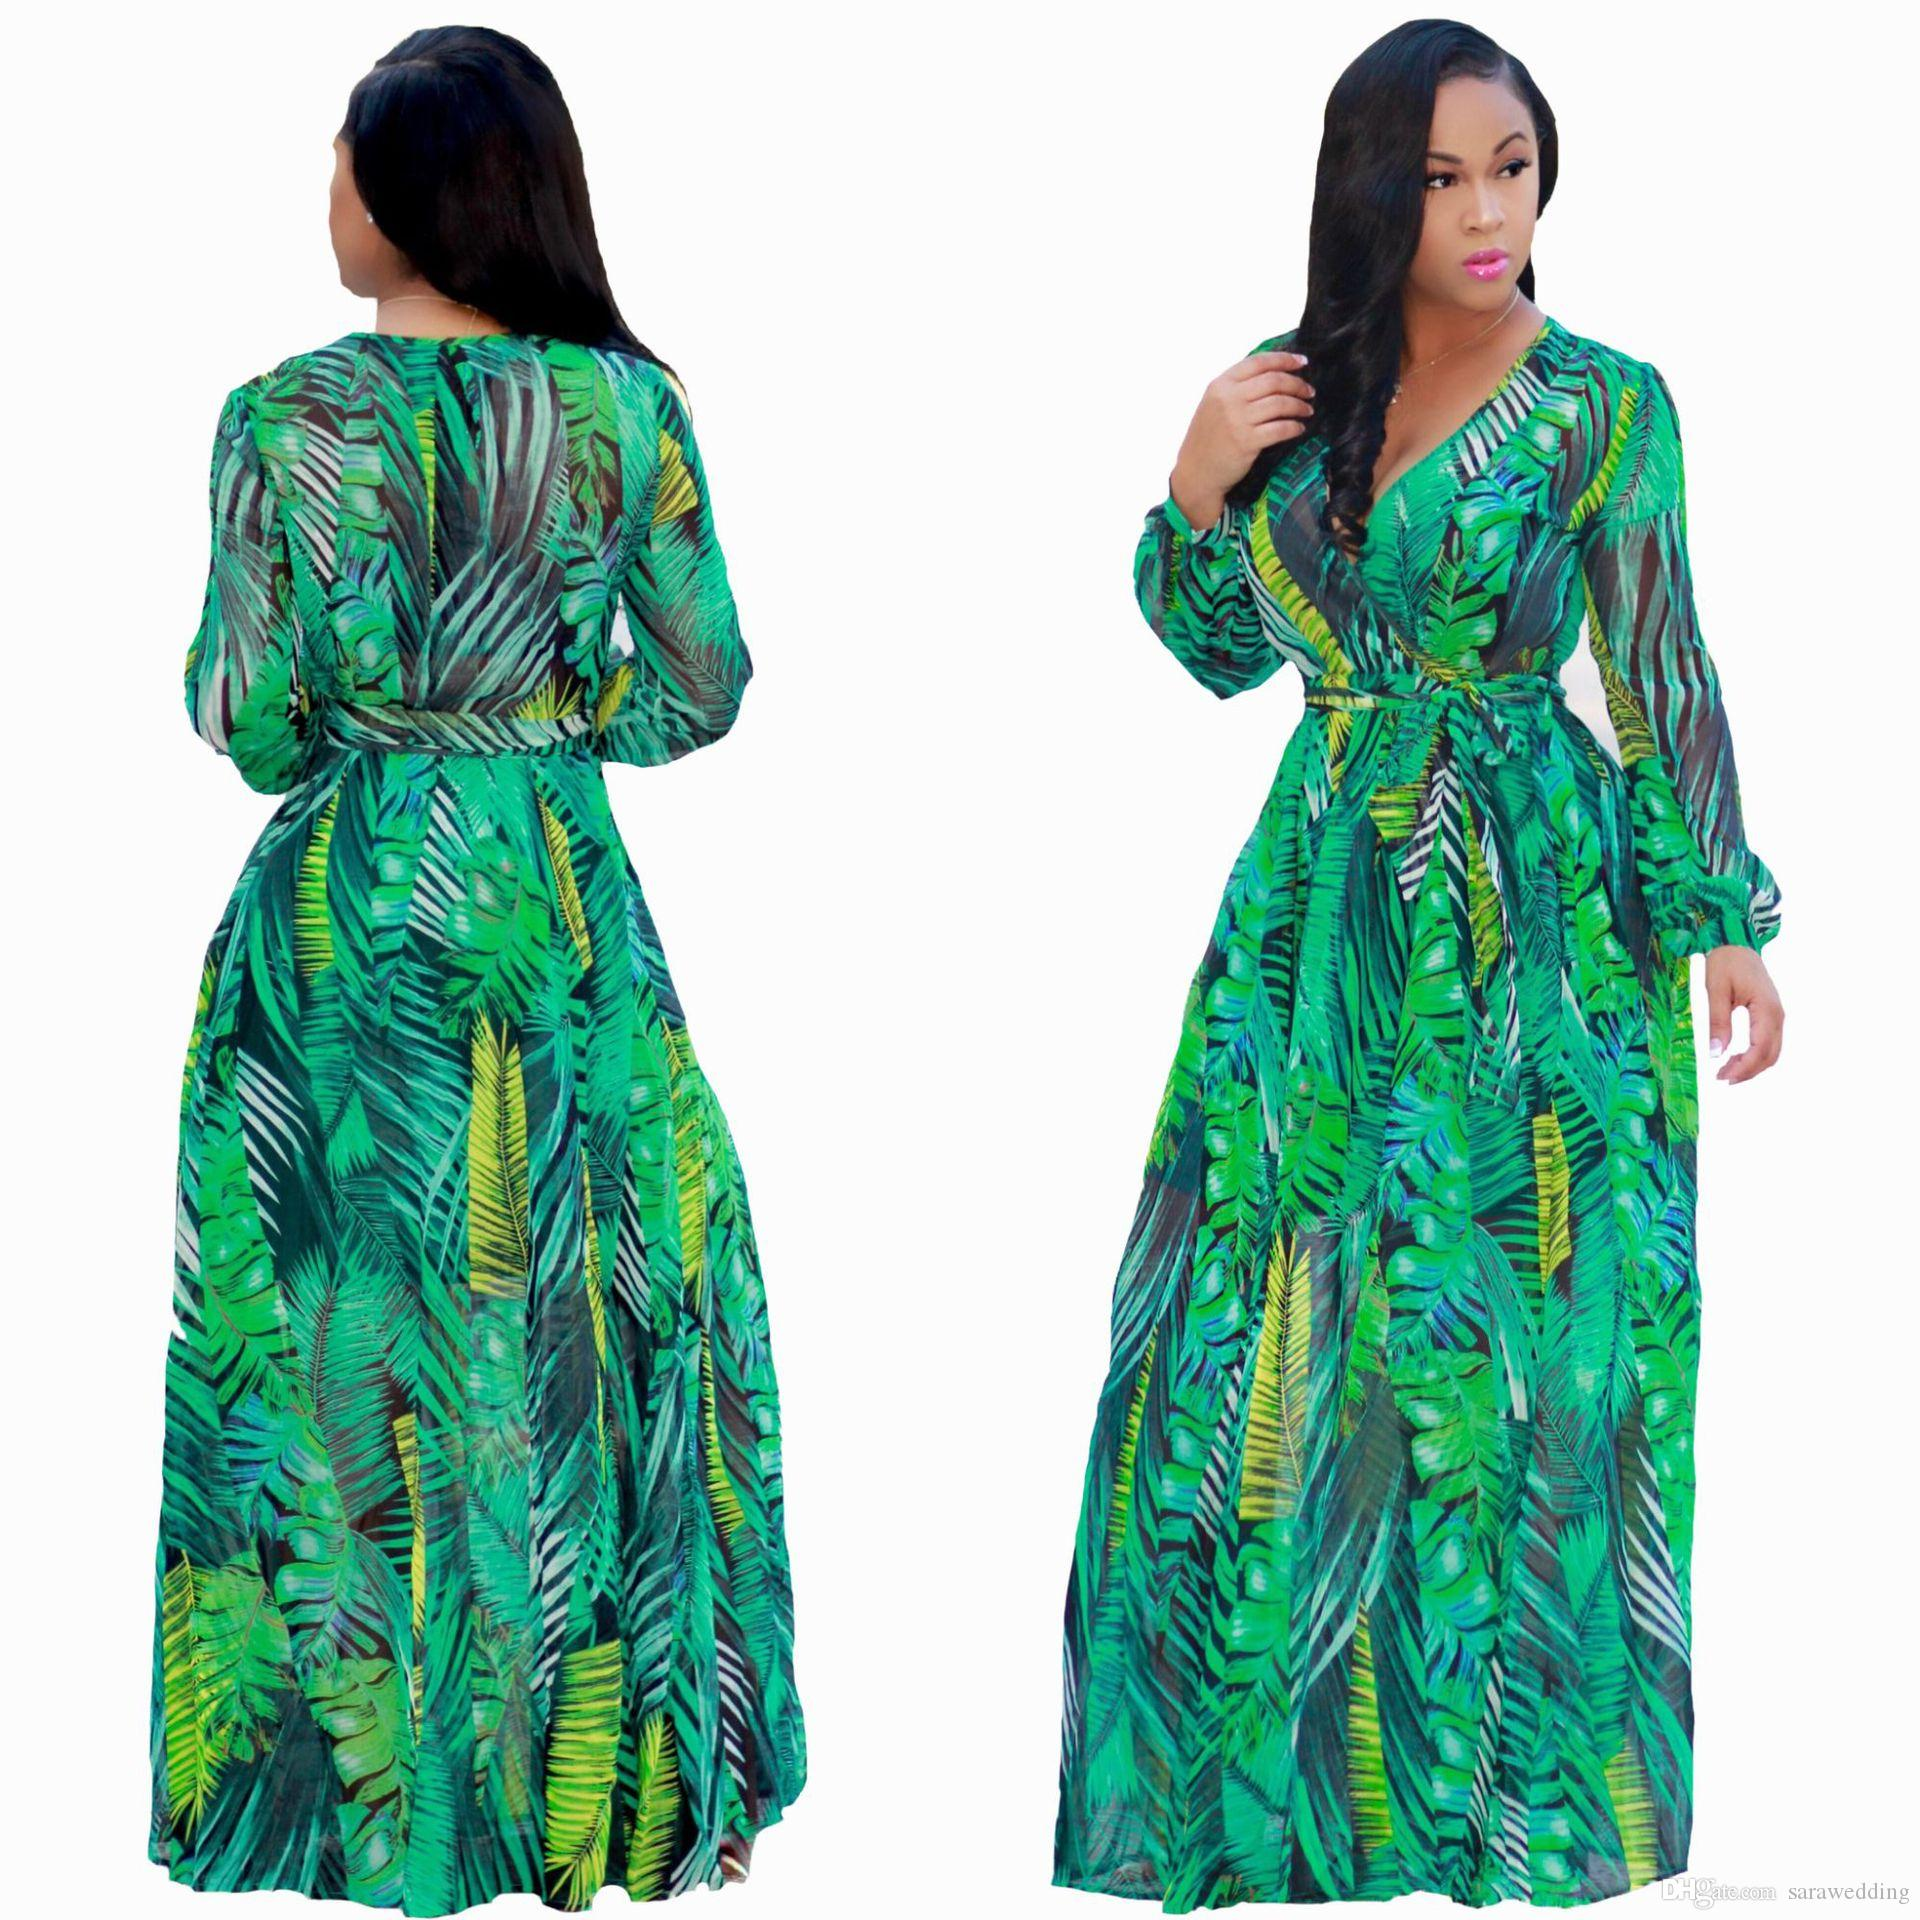 109955b59e4 Printing Floral Chiffon Maxi Dresses 2018 Autumn V Neck Women Bohemian  Dress Long Sleeves Plus Size Female Dresses Long Dresses Sale Dr Ess From  Sarawedding ...